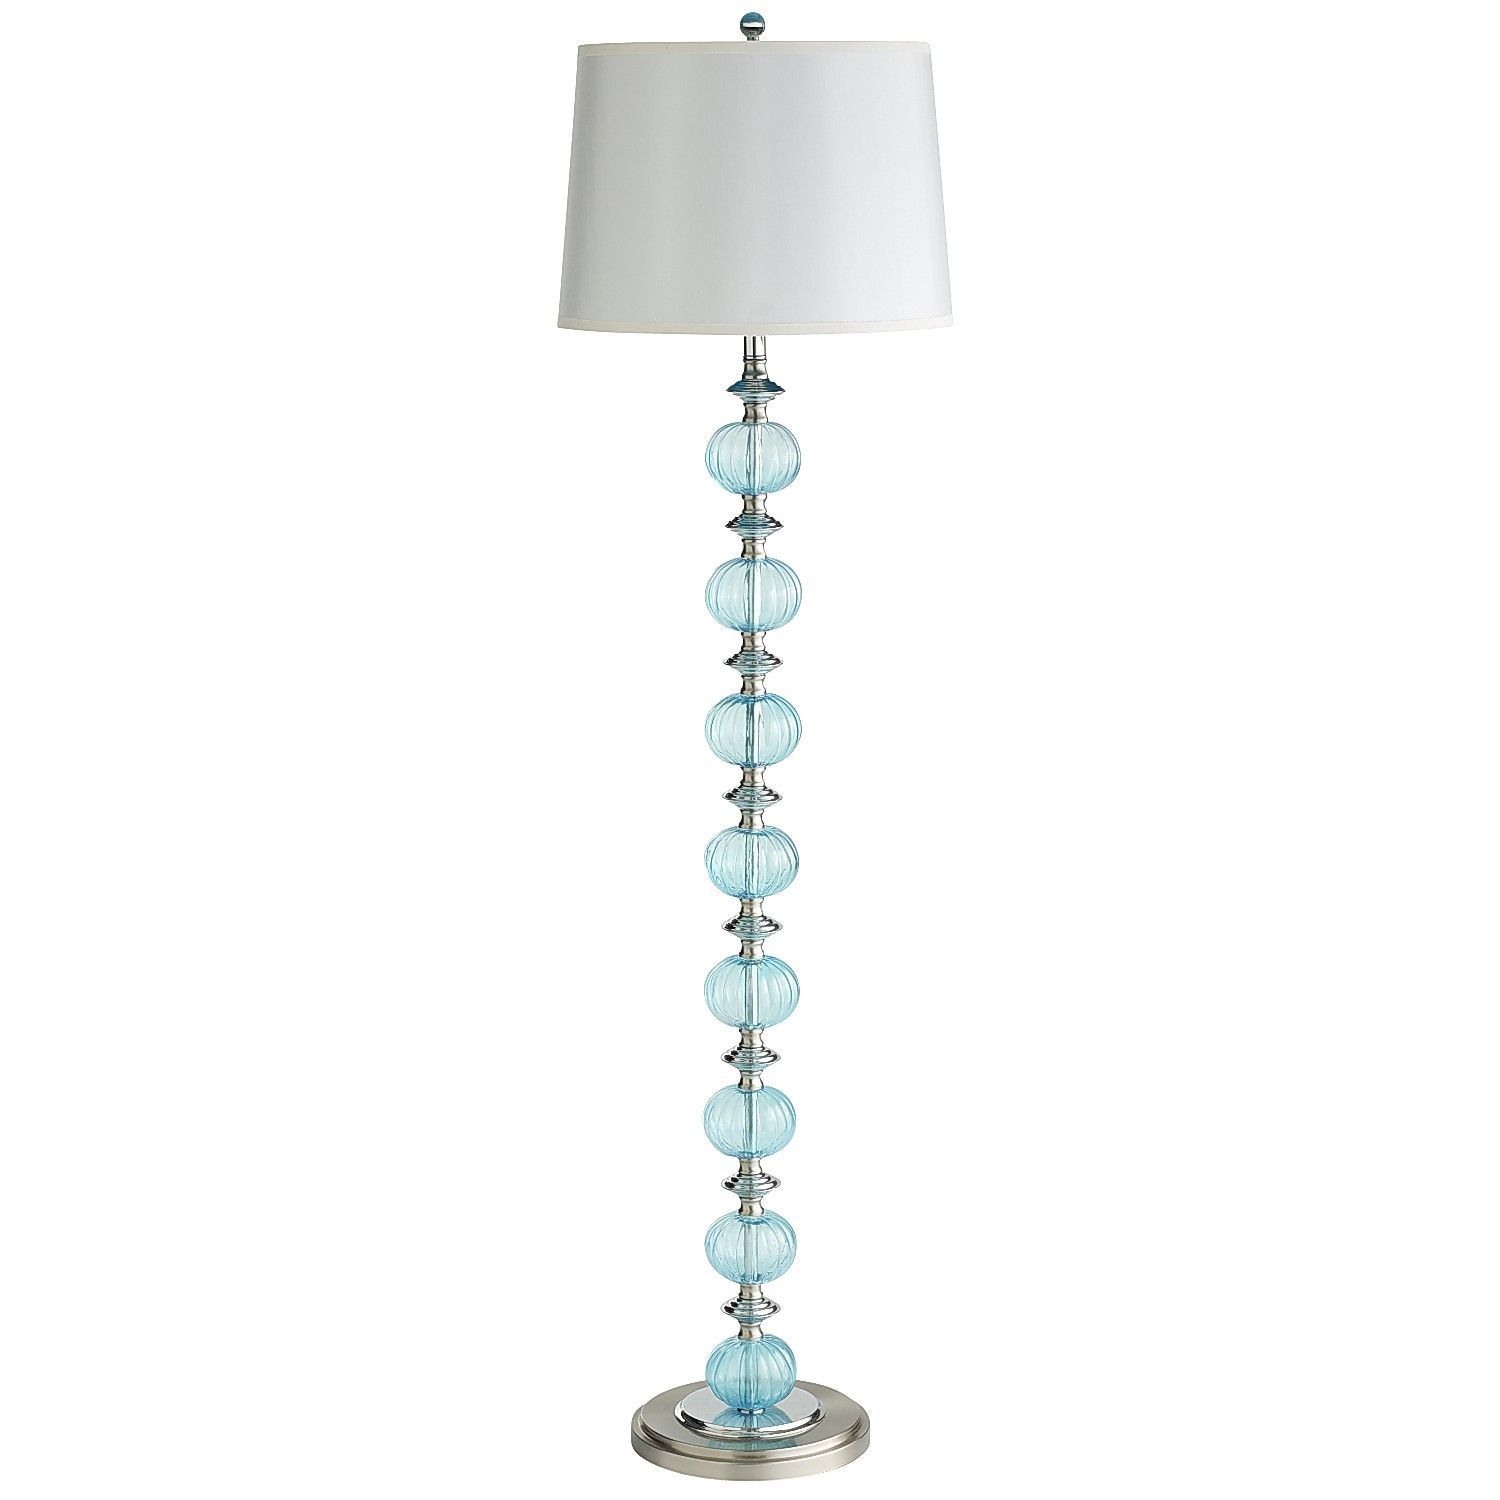 Aqua Glass Floor Lamp Glass Floor Lamp Glass Floor Floor Lamp